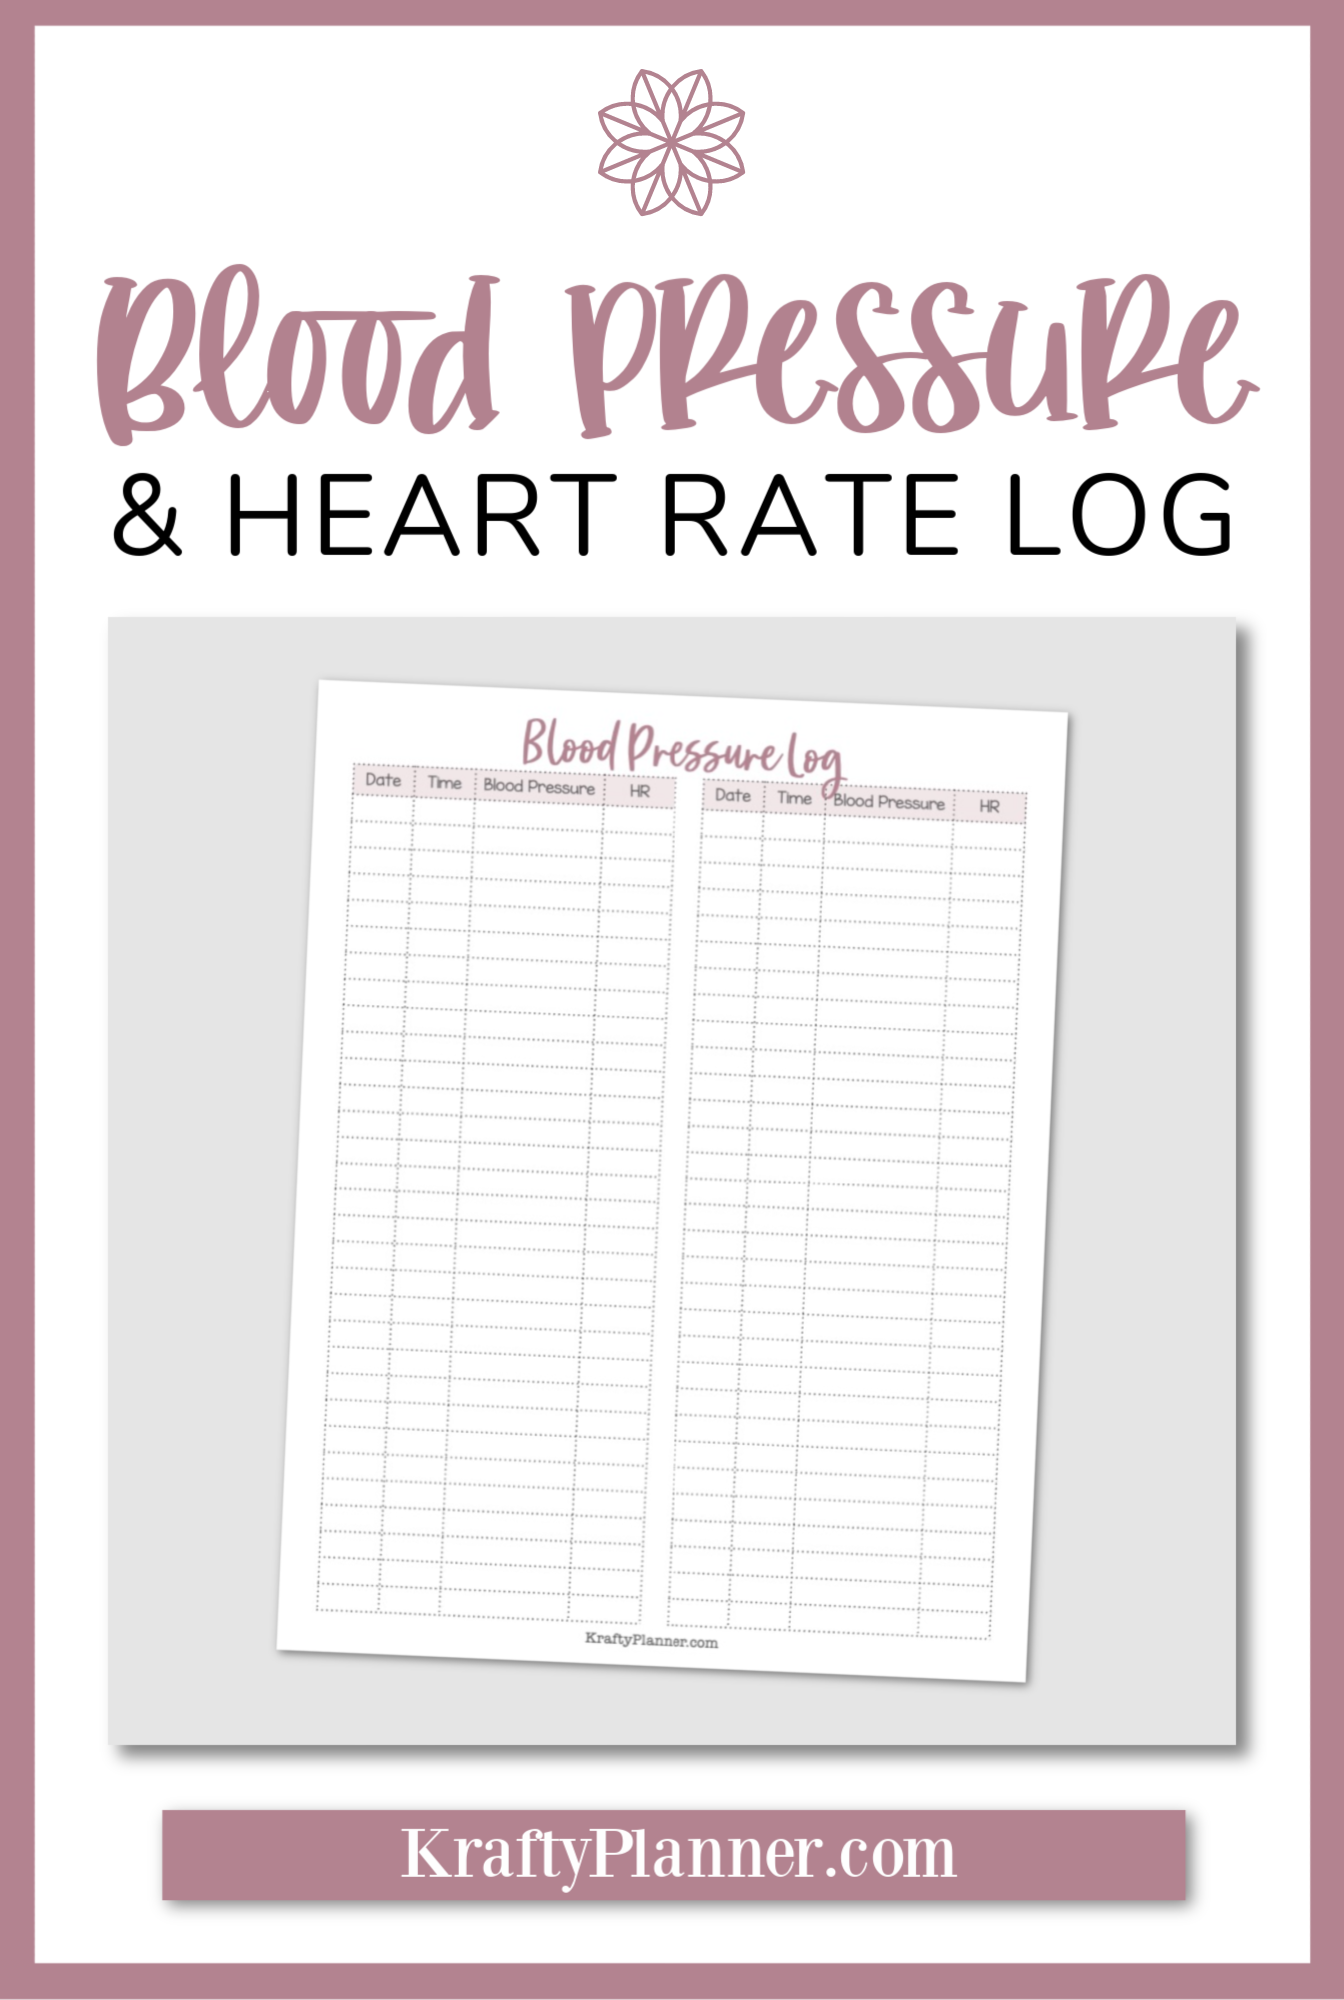 Blood Pressure and Heart Rate Tracker {Free Printable} PIN 2.png